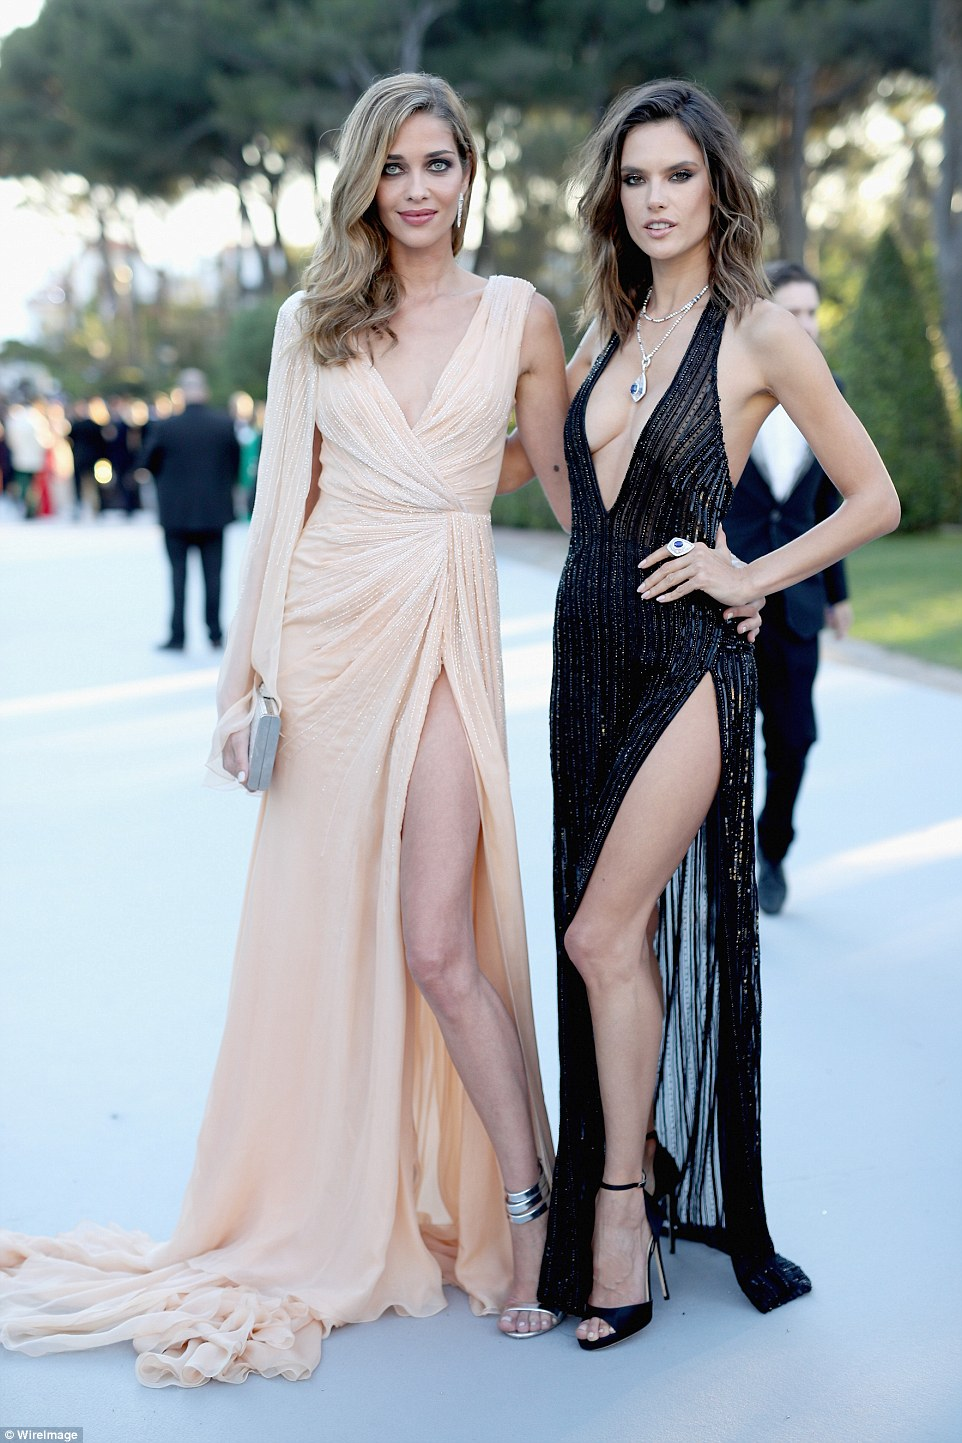 Leggy ladies! The pair showed off their tanned and toned pins in the sultry ensembles